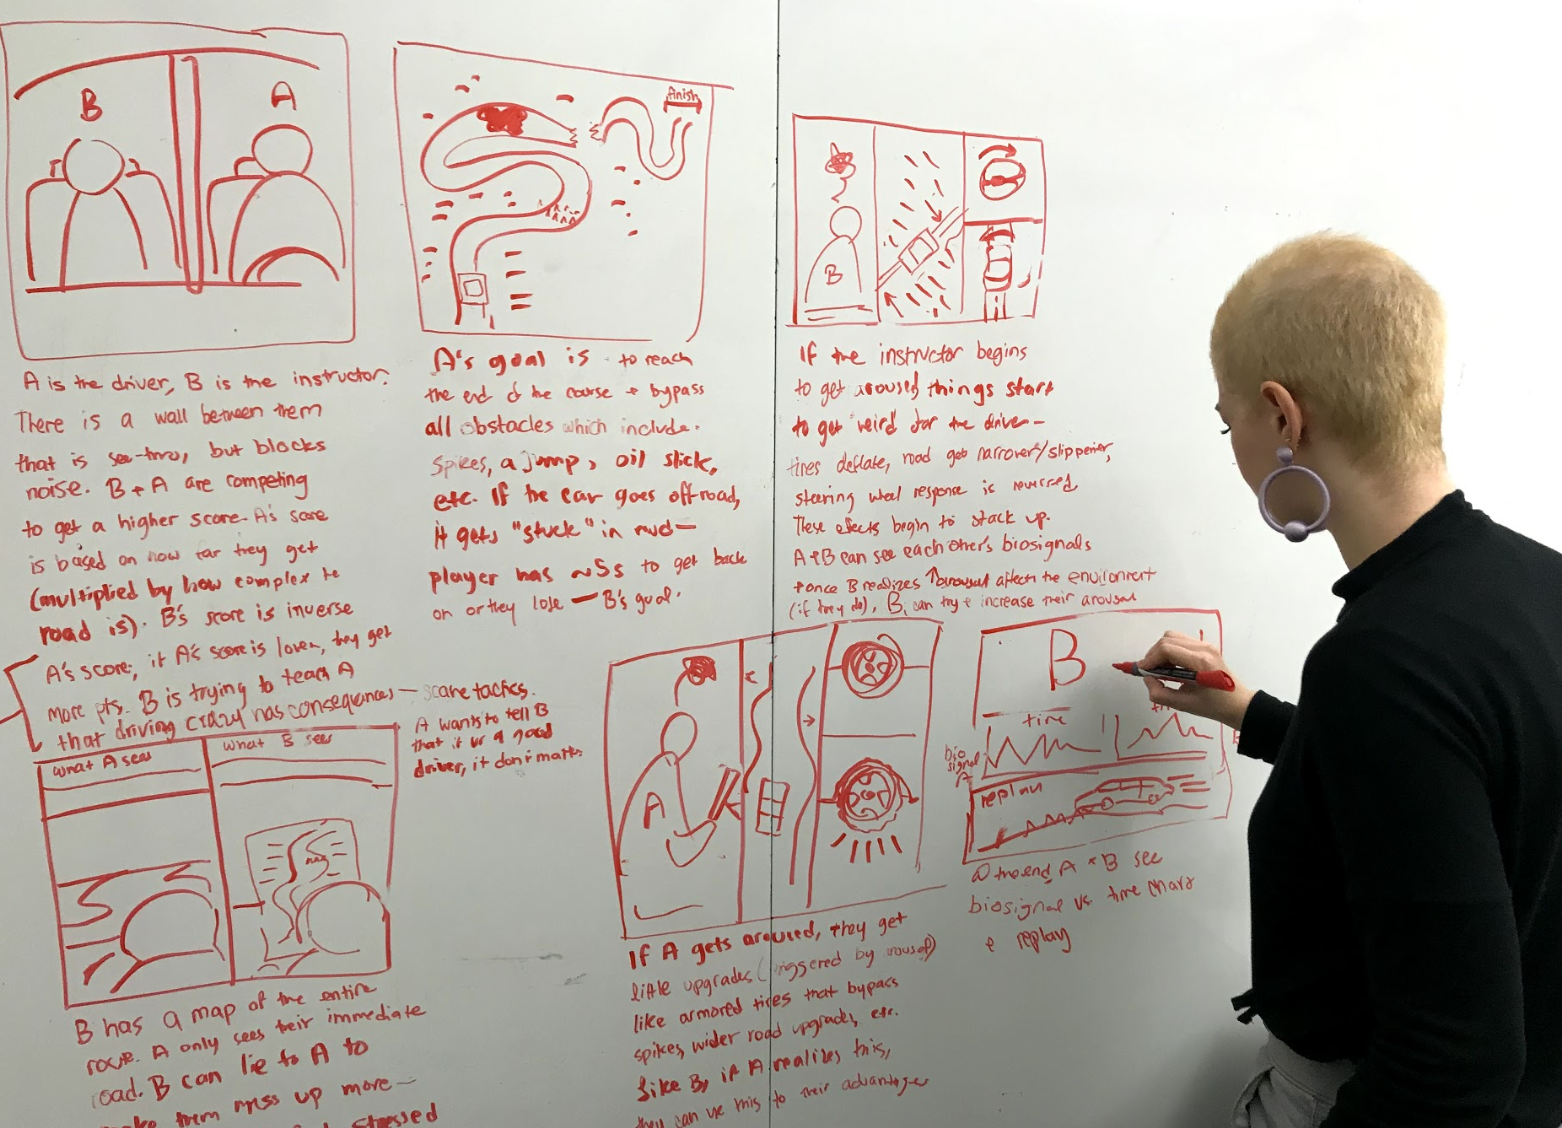 Storyboarding the final game concept